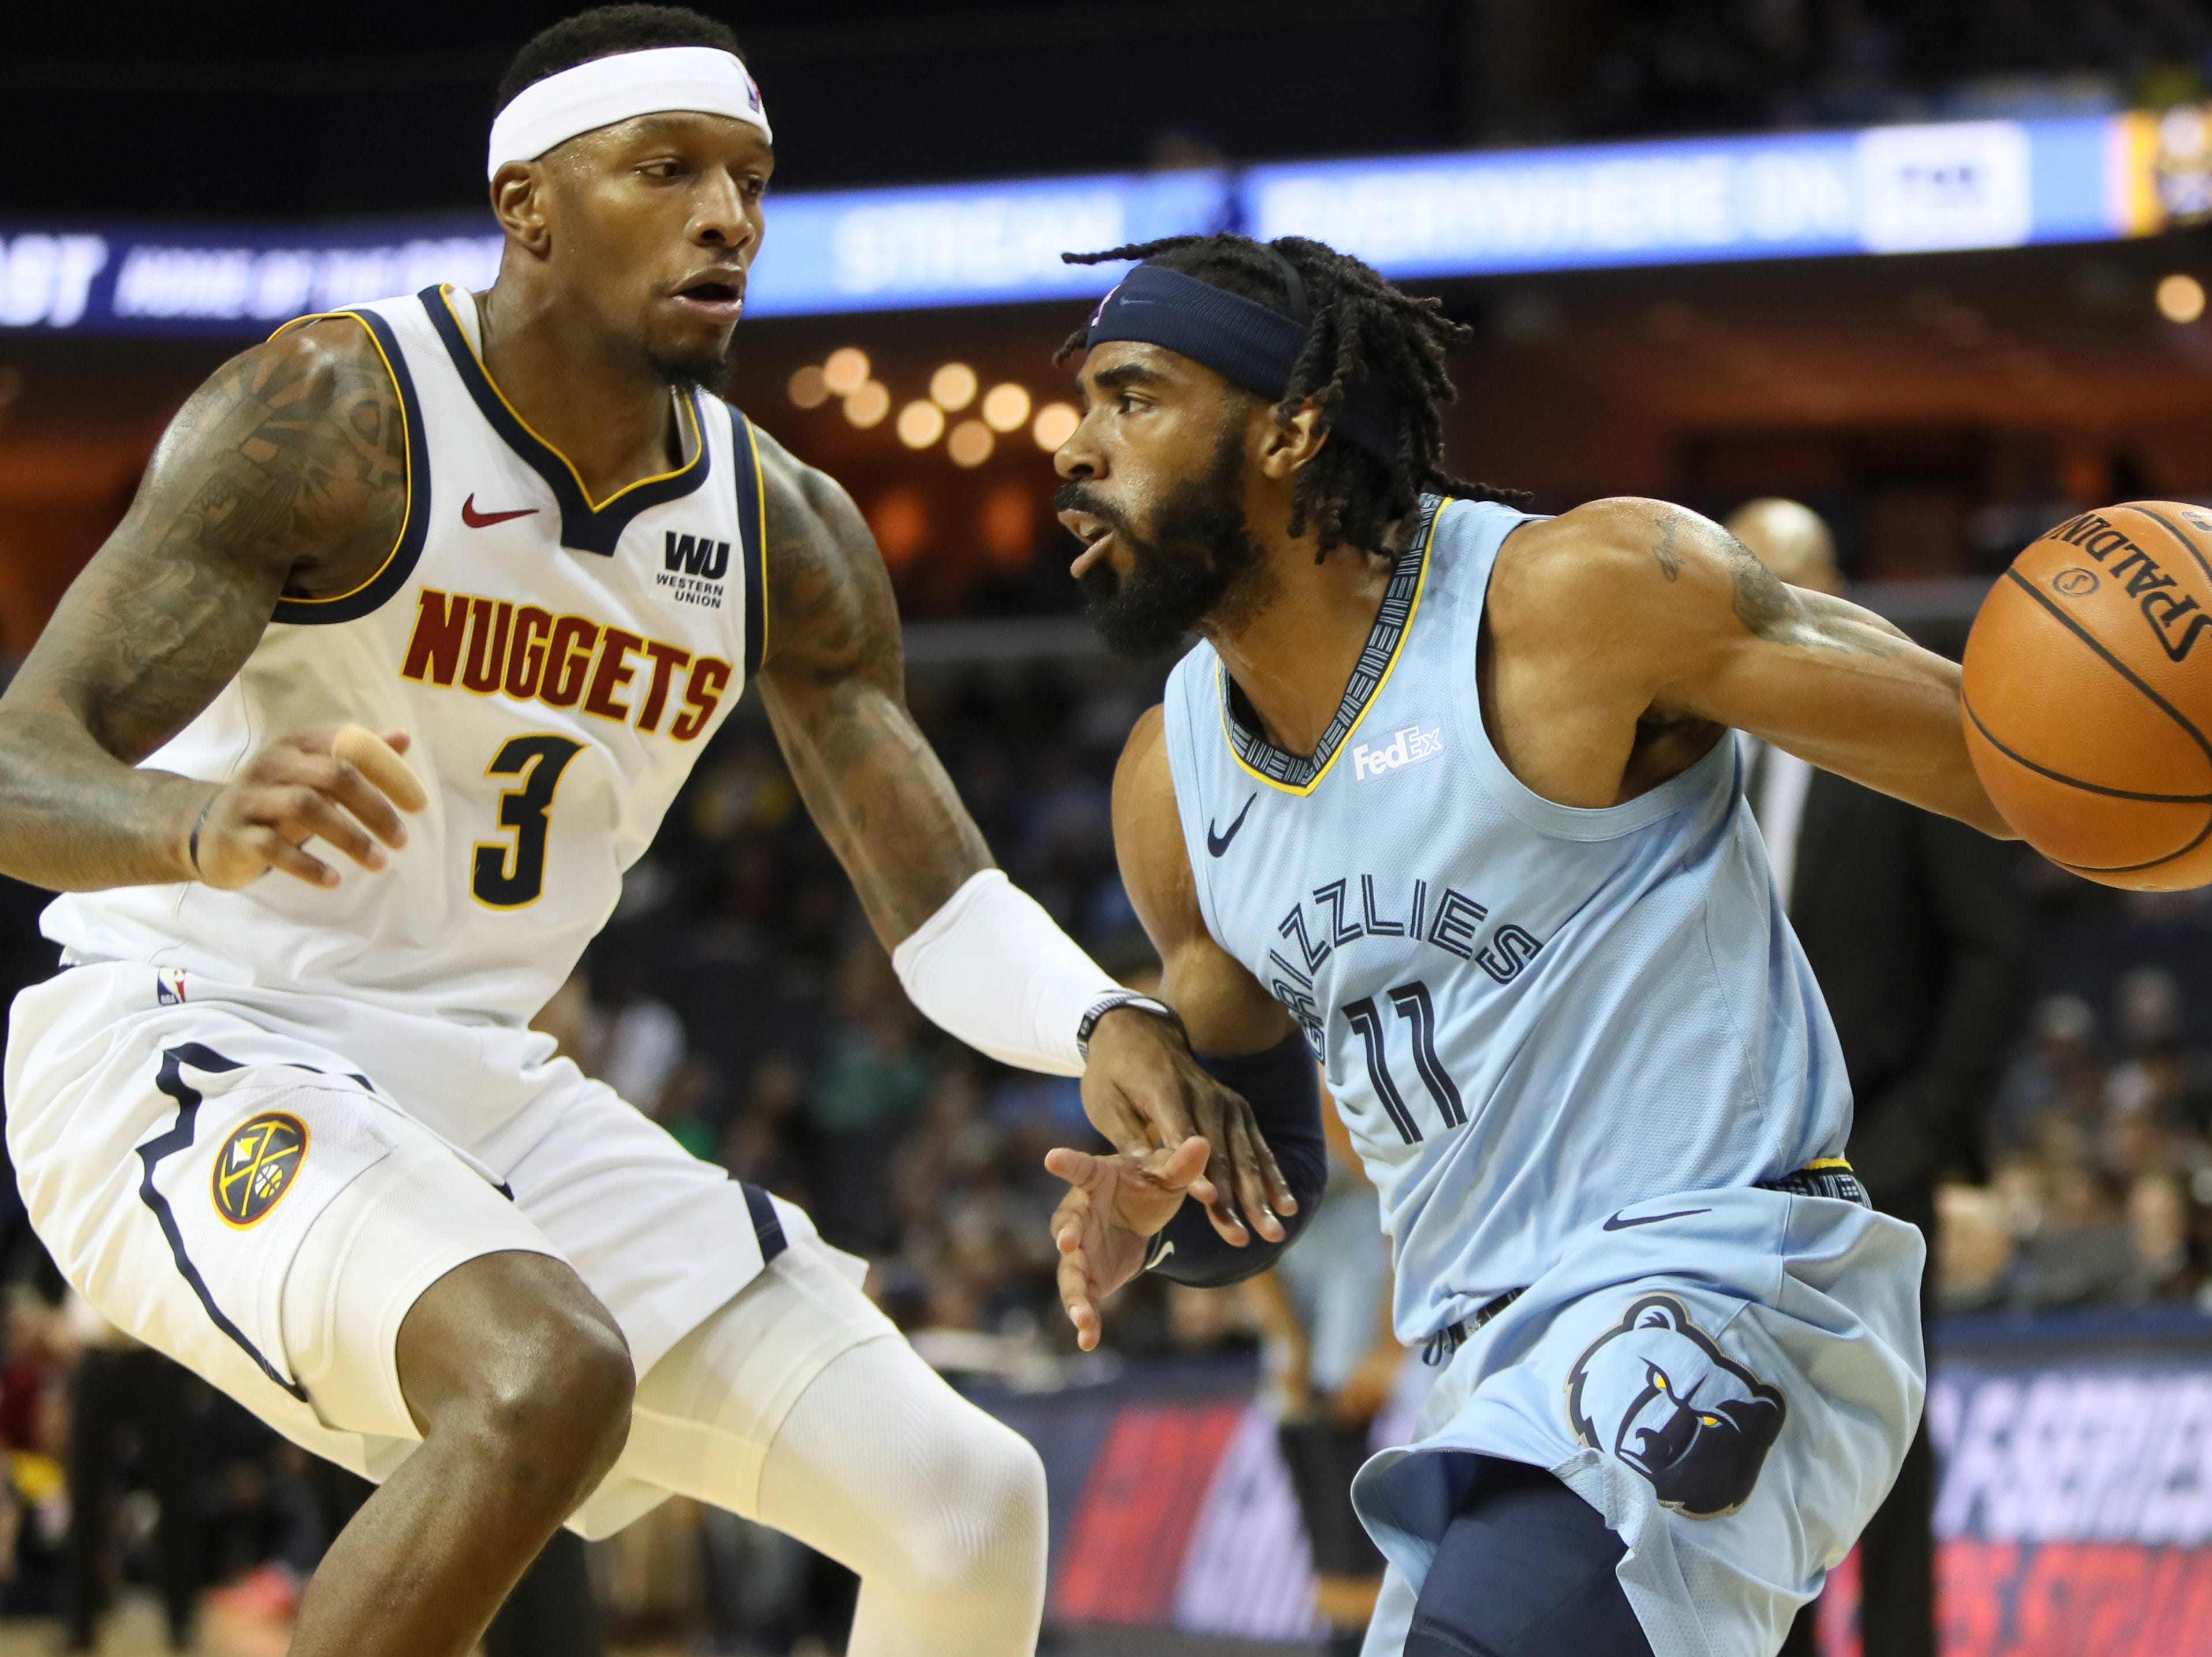 Memphis Grizzlies guard Mike Conley looks to get past Denver Nuggets forward Torrey Craig during their game at the FedExForum on Wednesday, November 7, 2018.